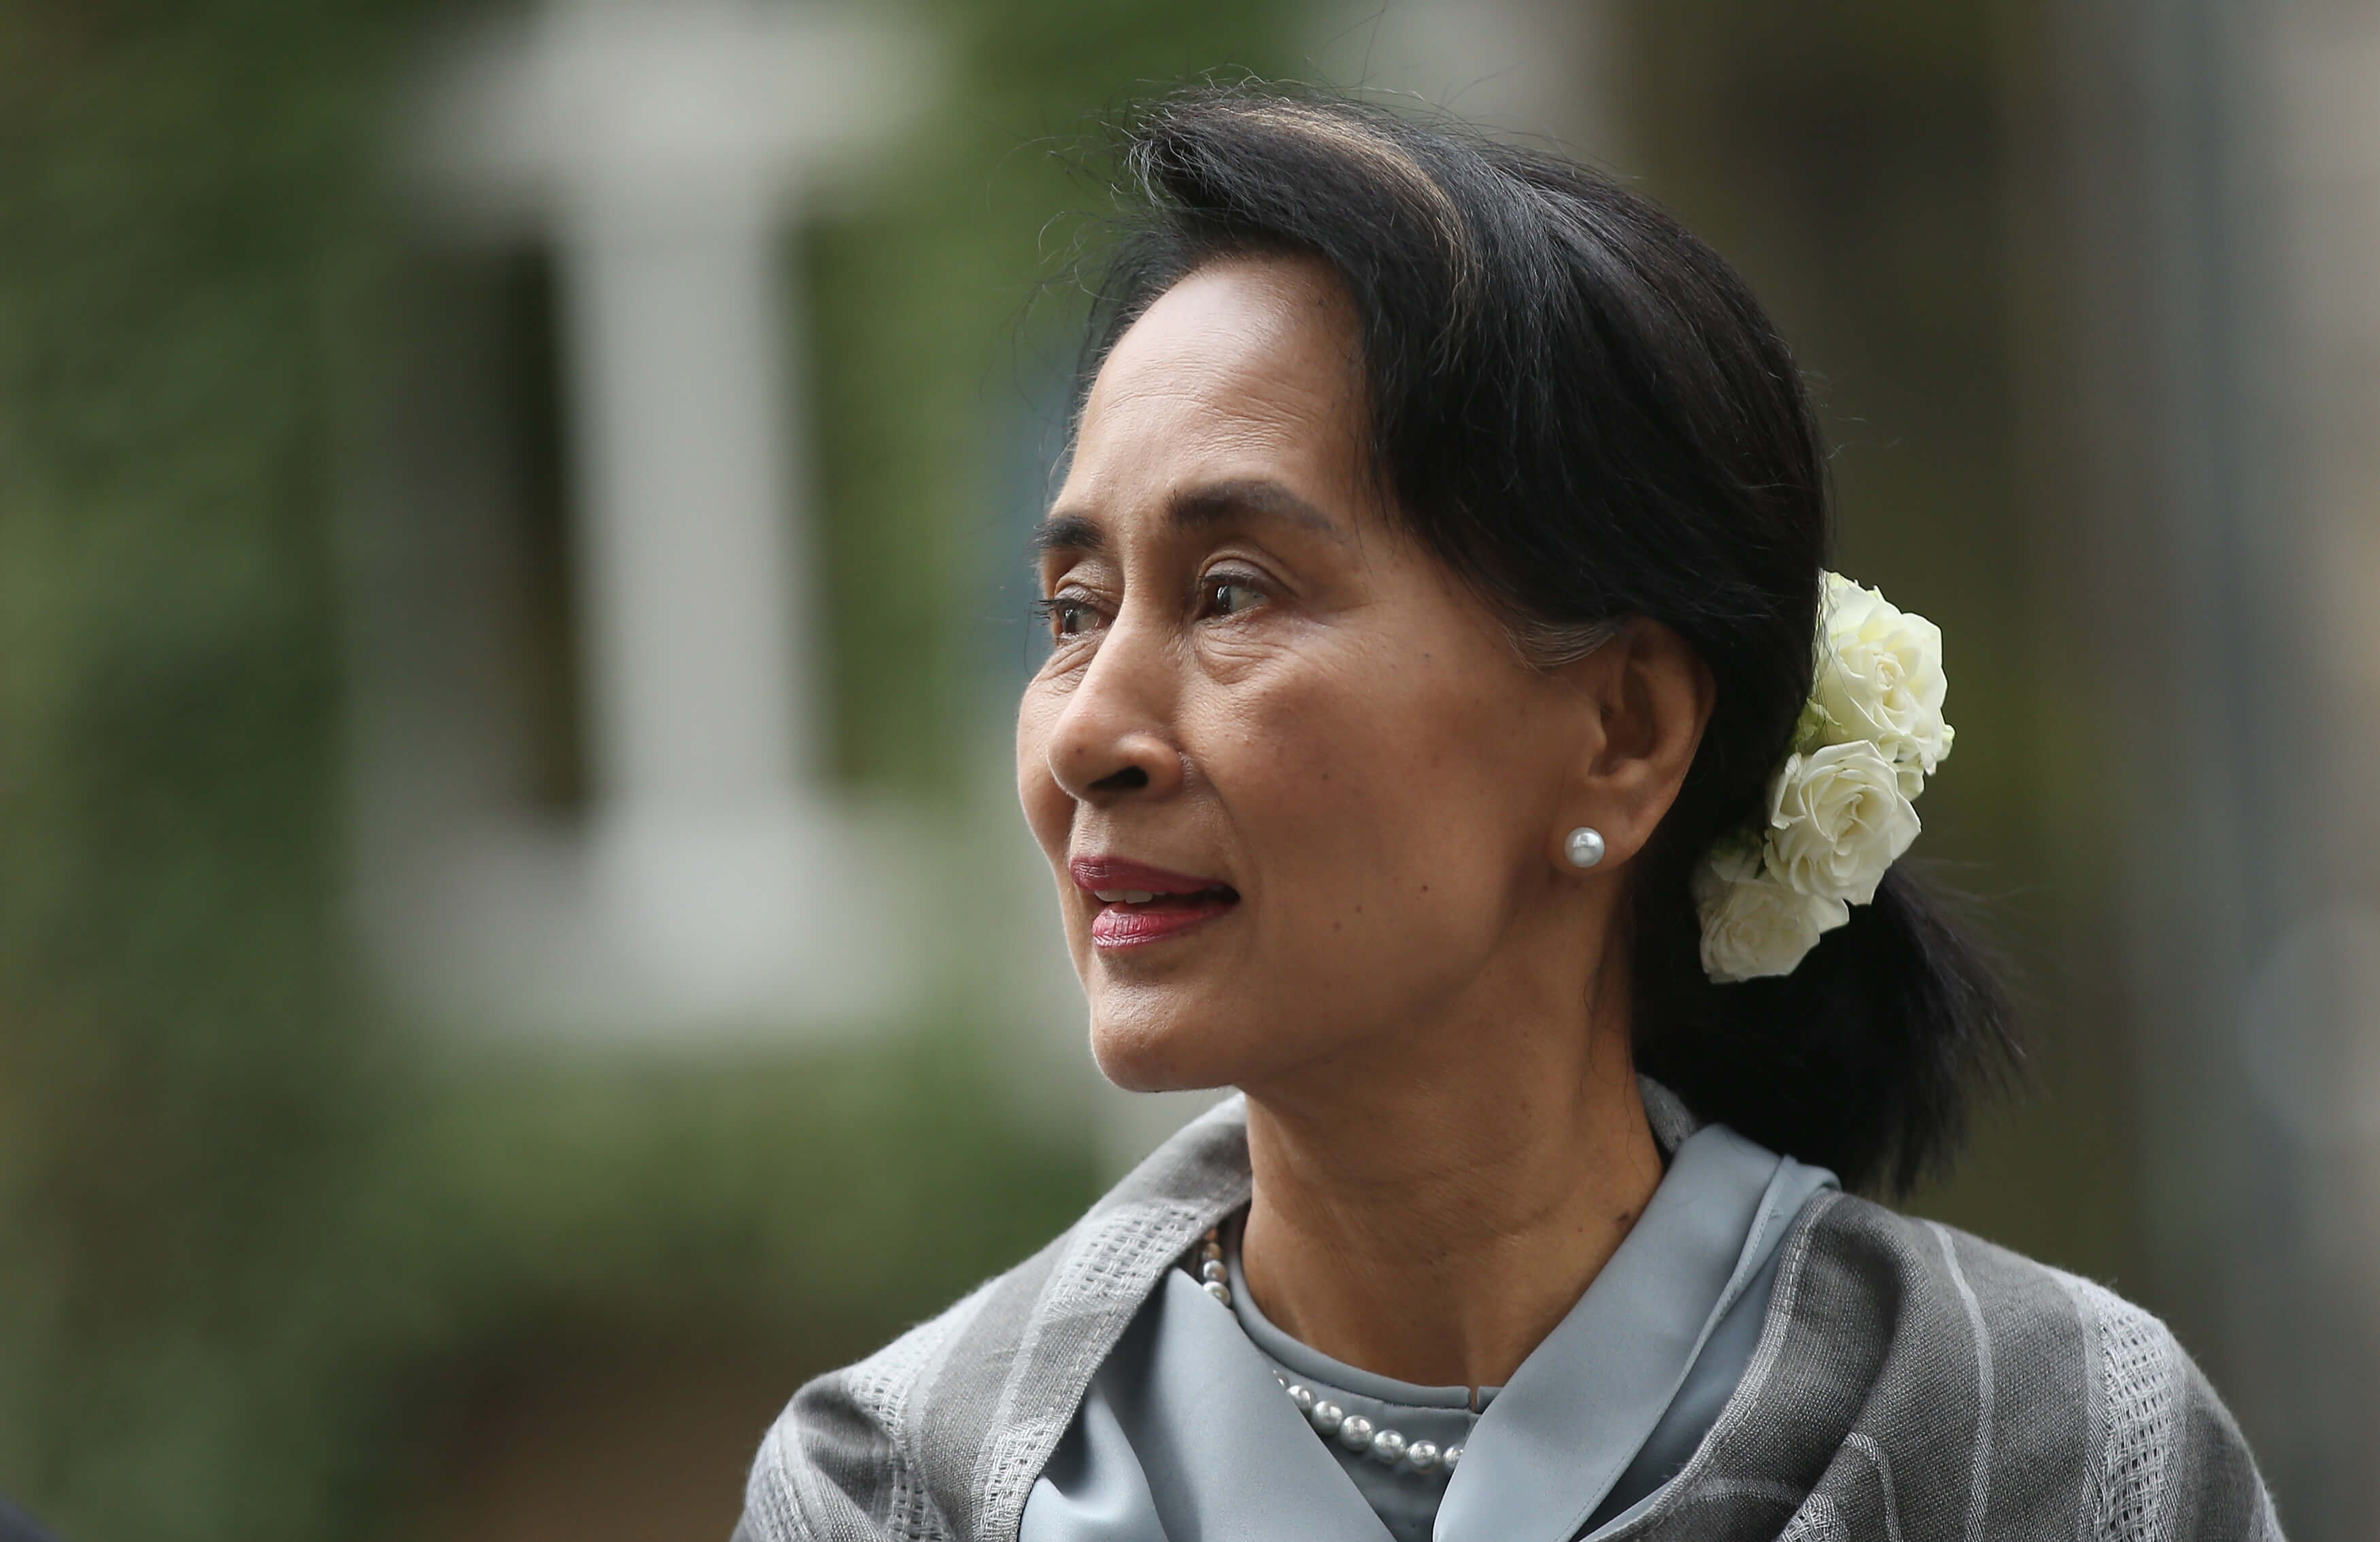 Aung San Suu Kyi Biography, Age, Weight, Height, Friend, Like, Affairs, Favourite, Birthdate & Other